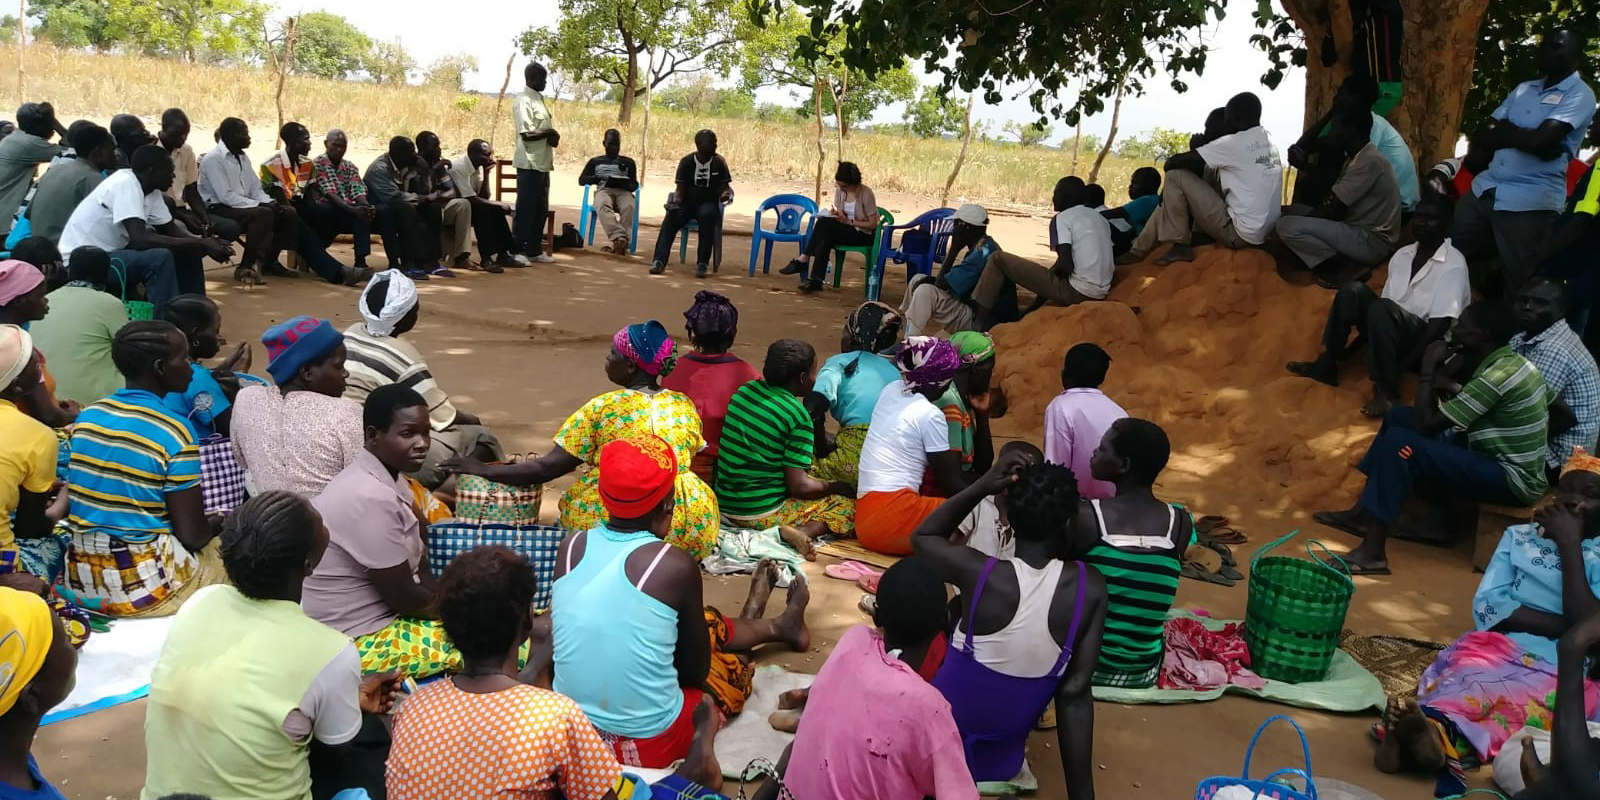 Community meeting Pwunu Dyang, Uganda